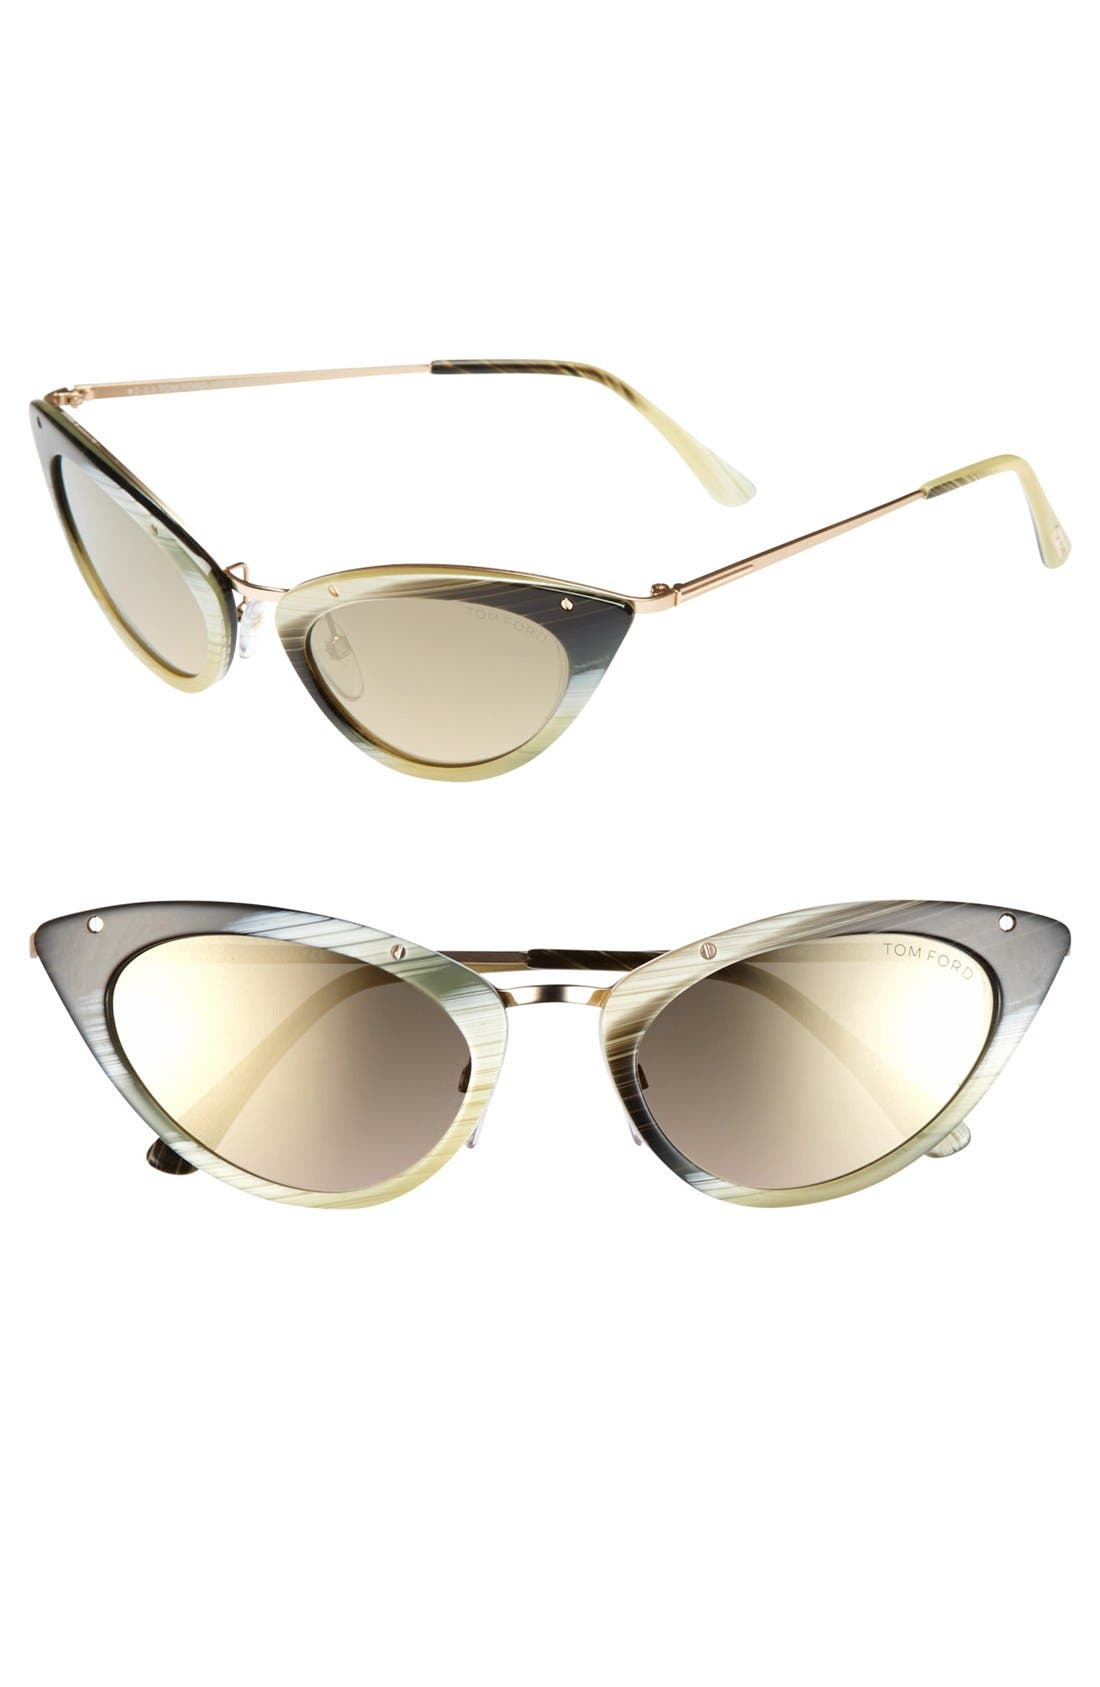 Alternate Image 1 Selected - Tom Ford 'Grace' 52mm Sunglasses